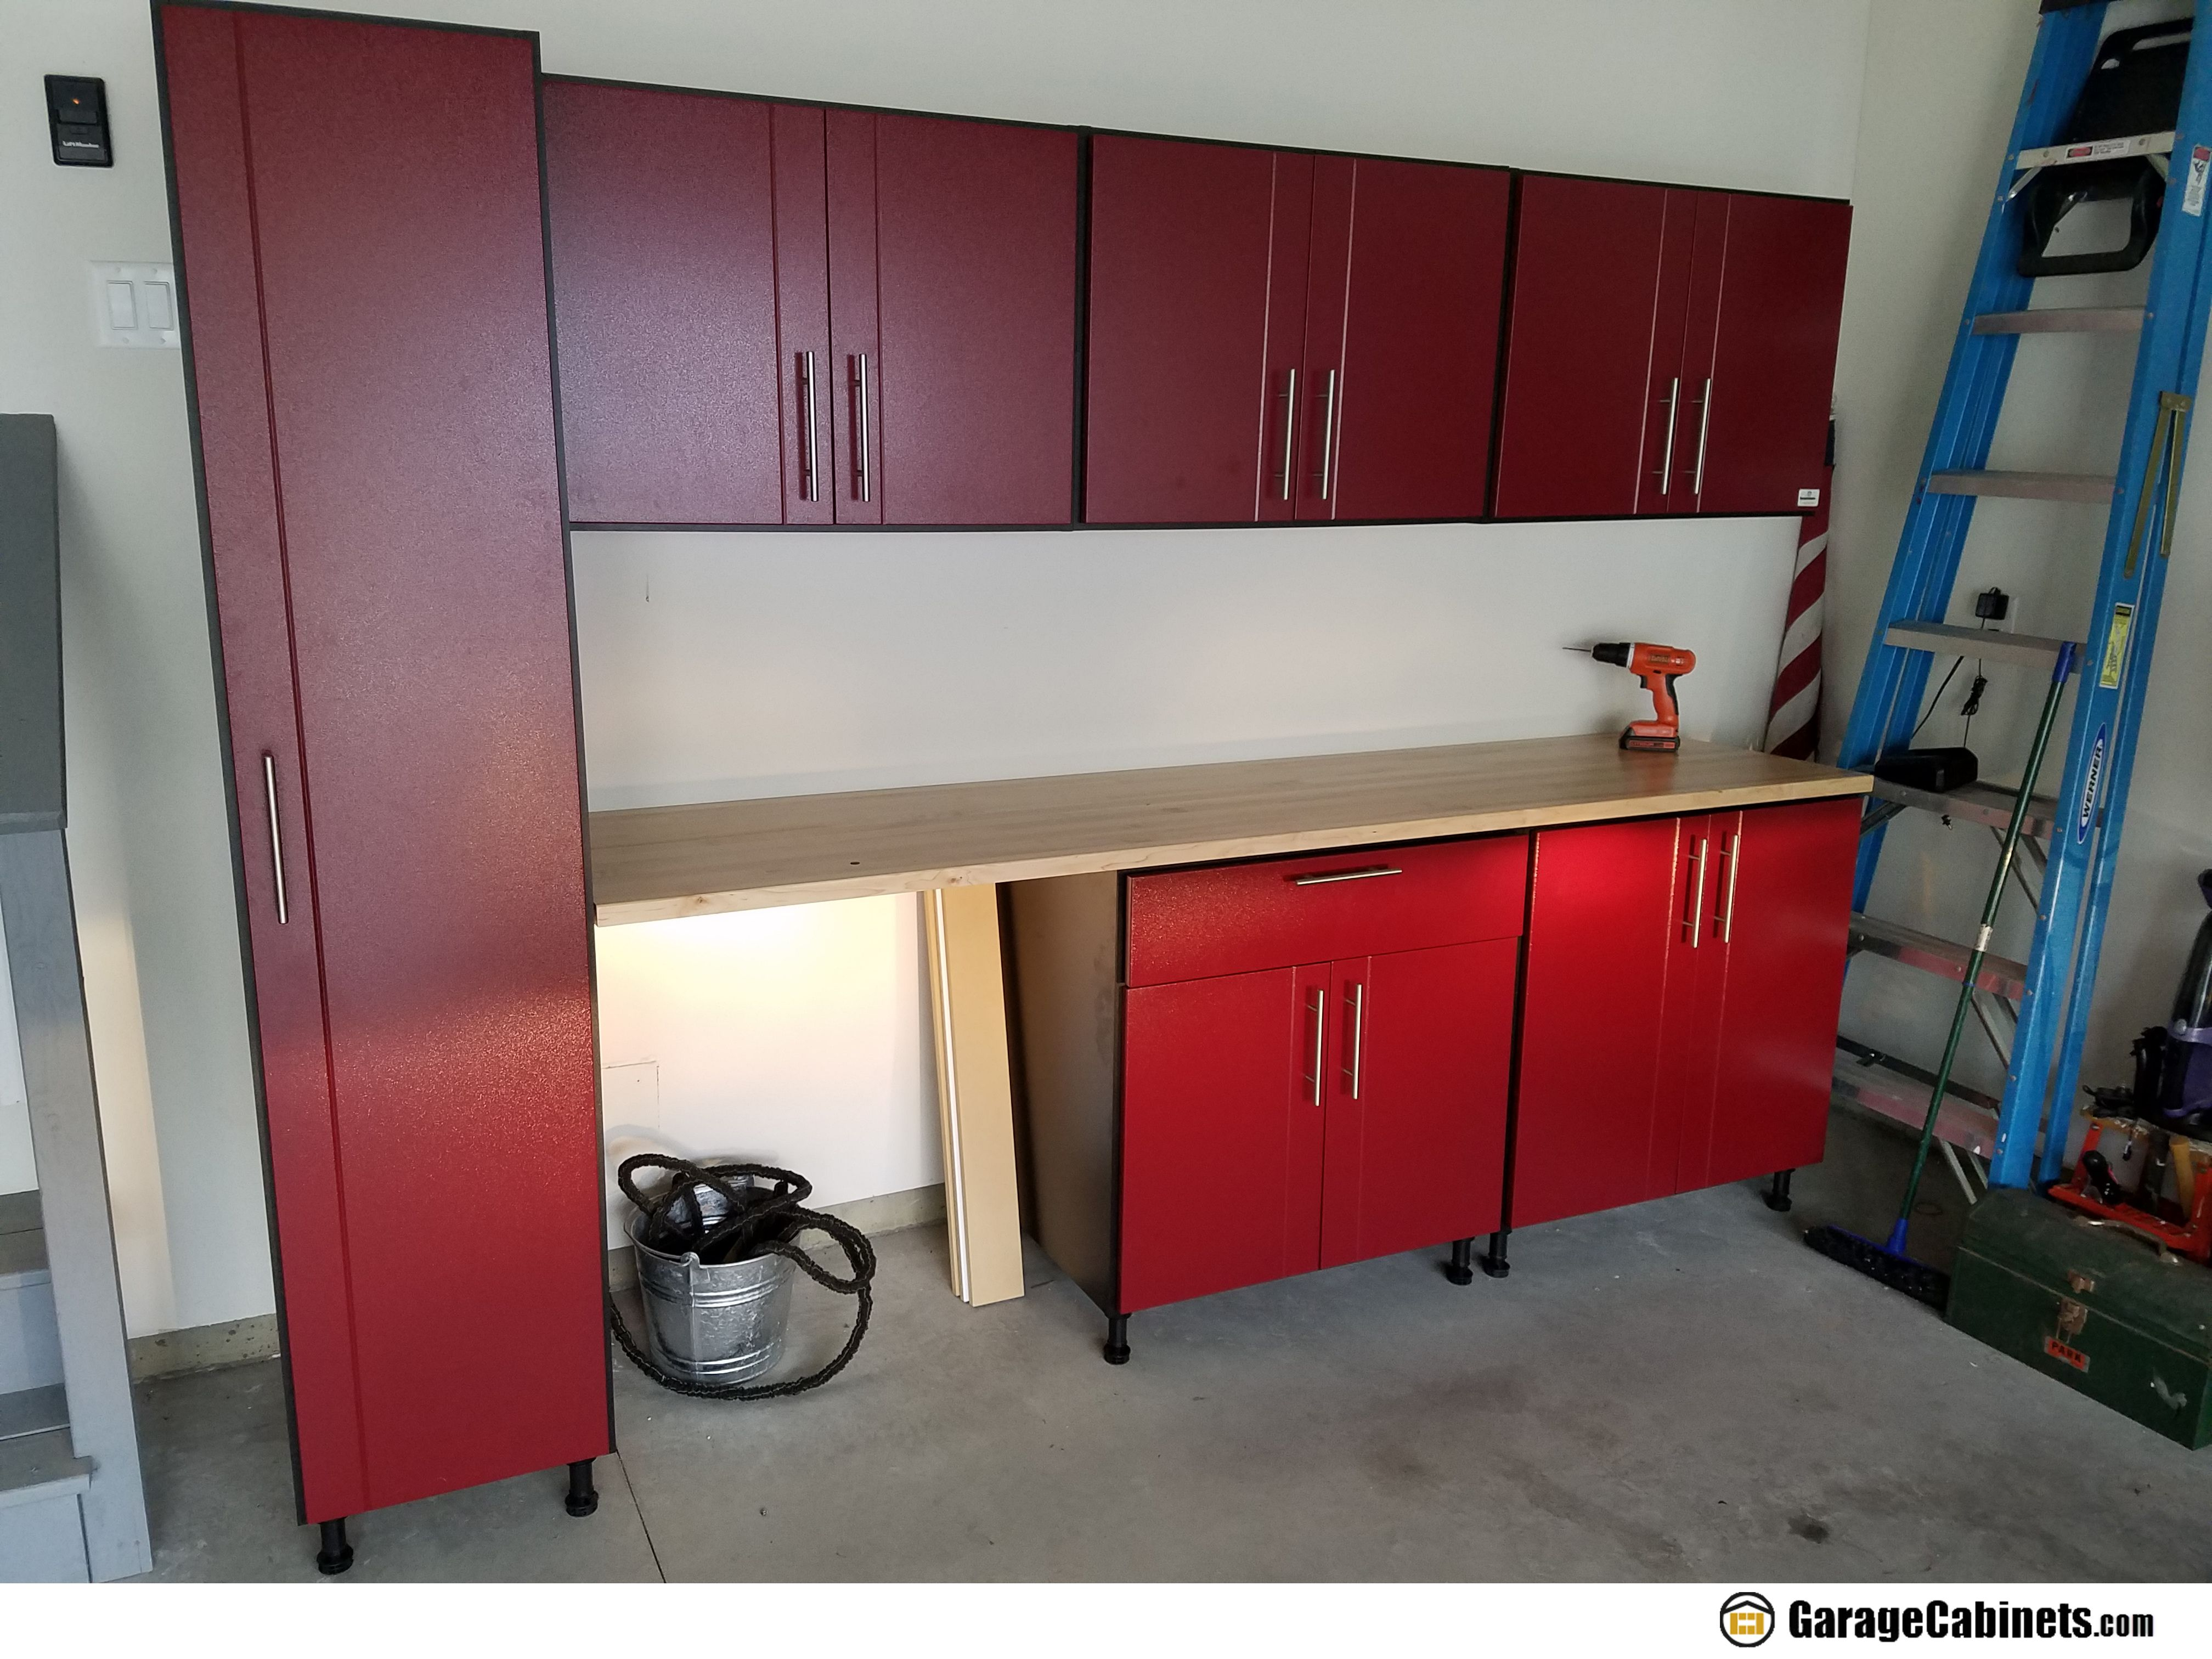 Garagecabinets Com Manufactures The Finest Garage Cabinets With